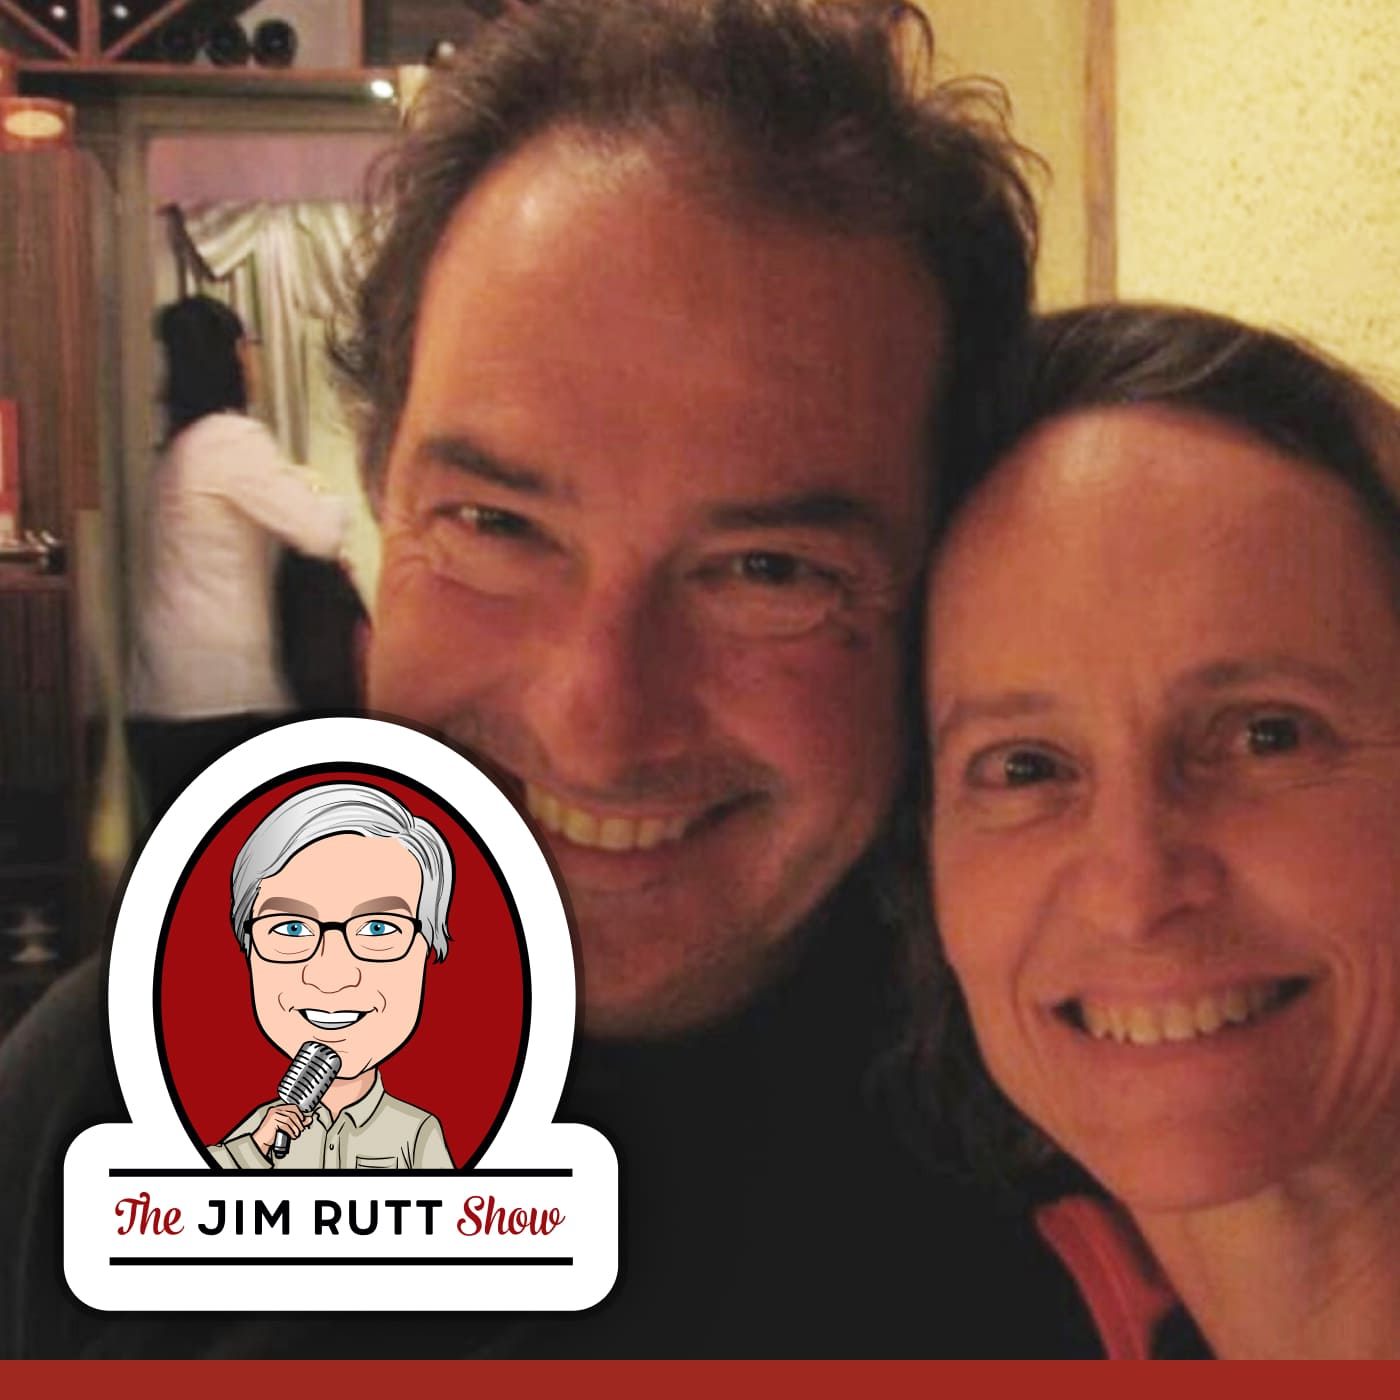 The Jim Rutt Show and Podcast Interview